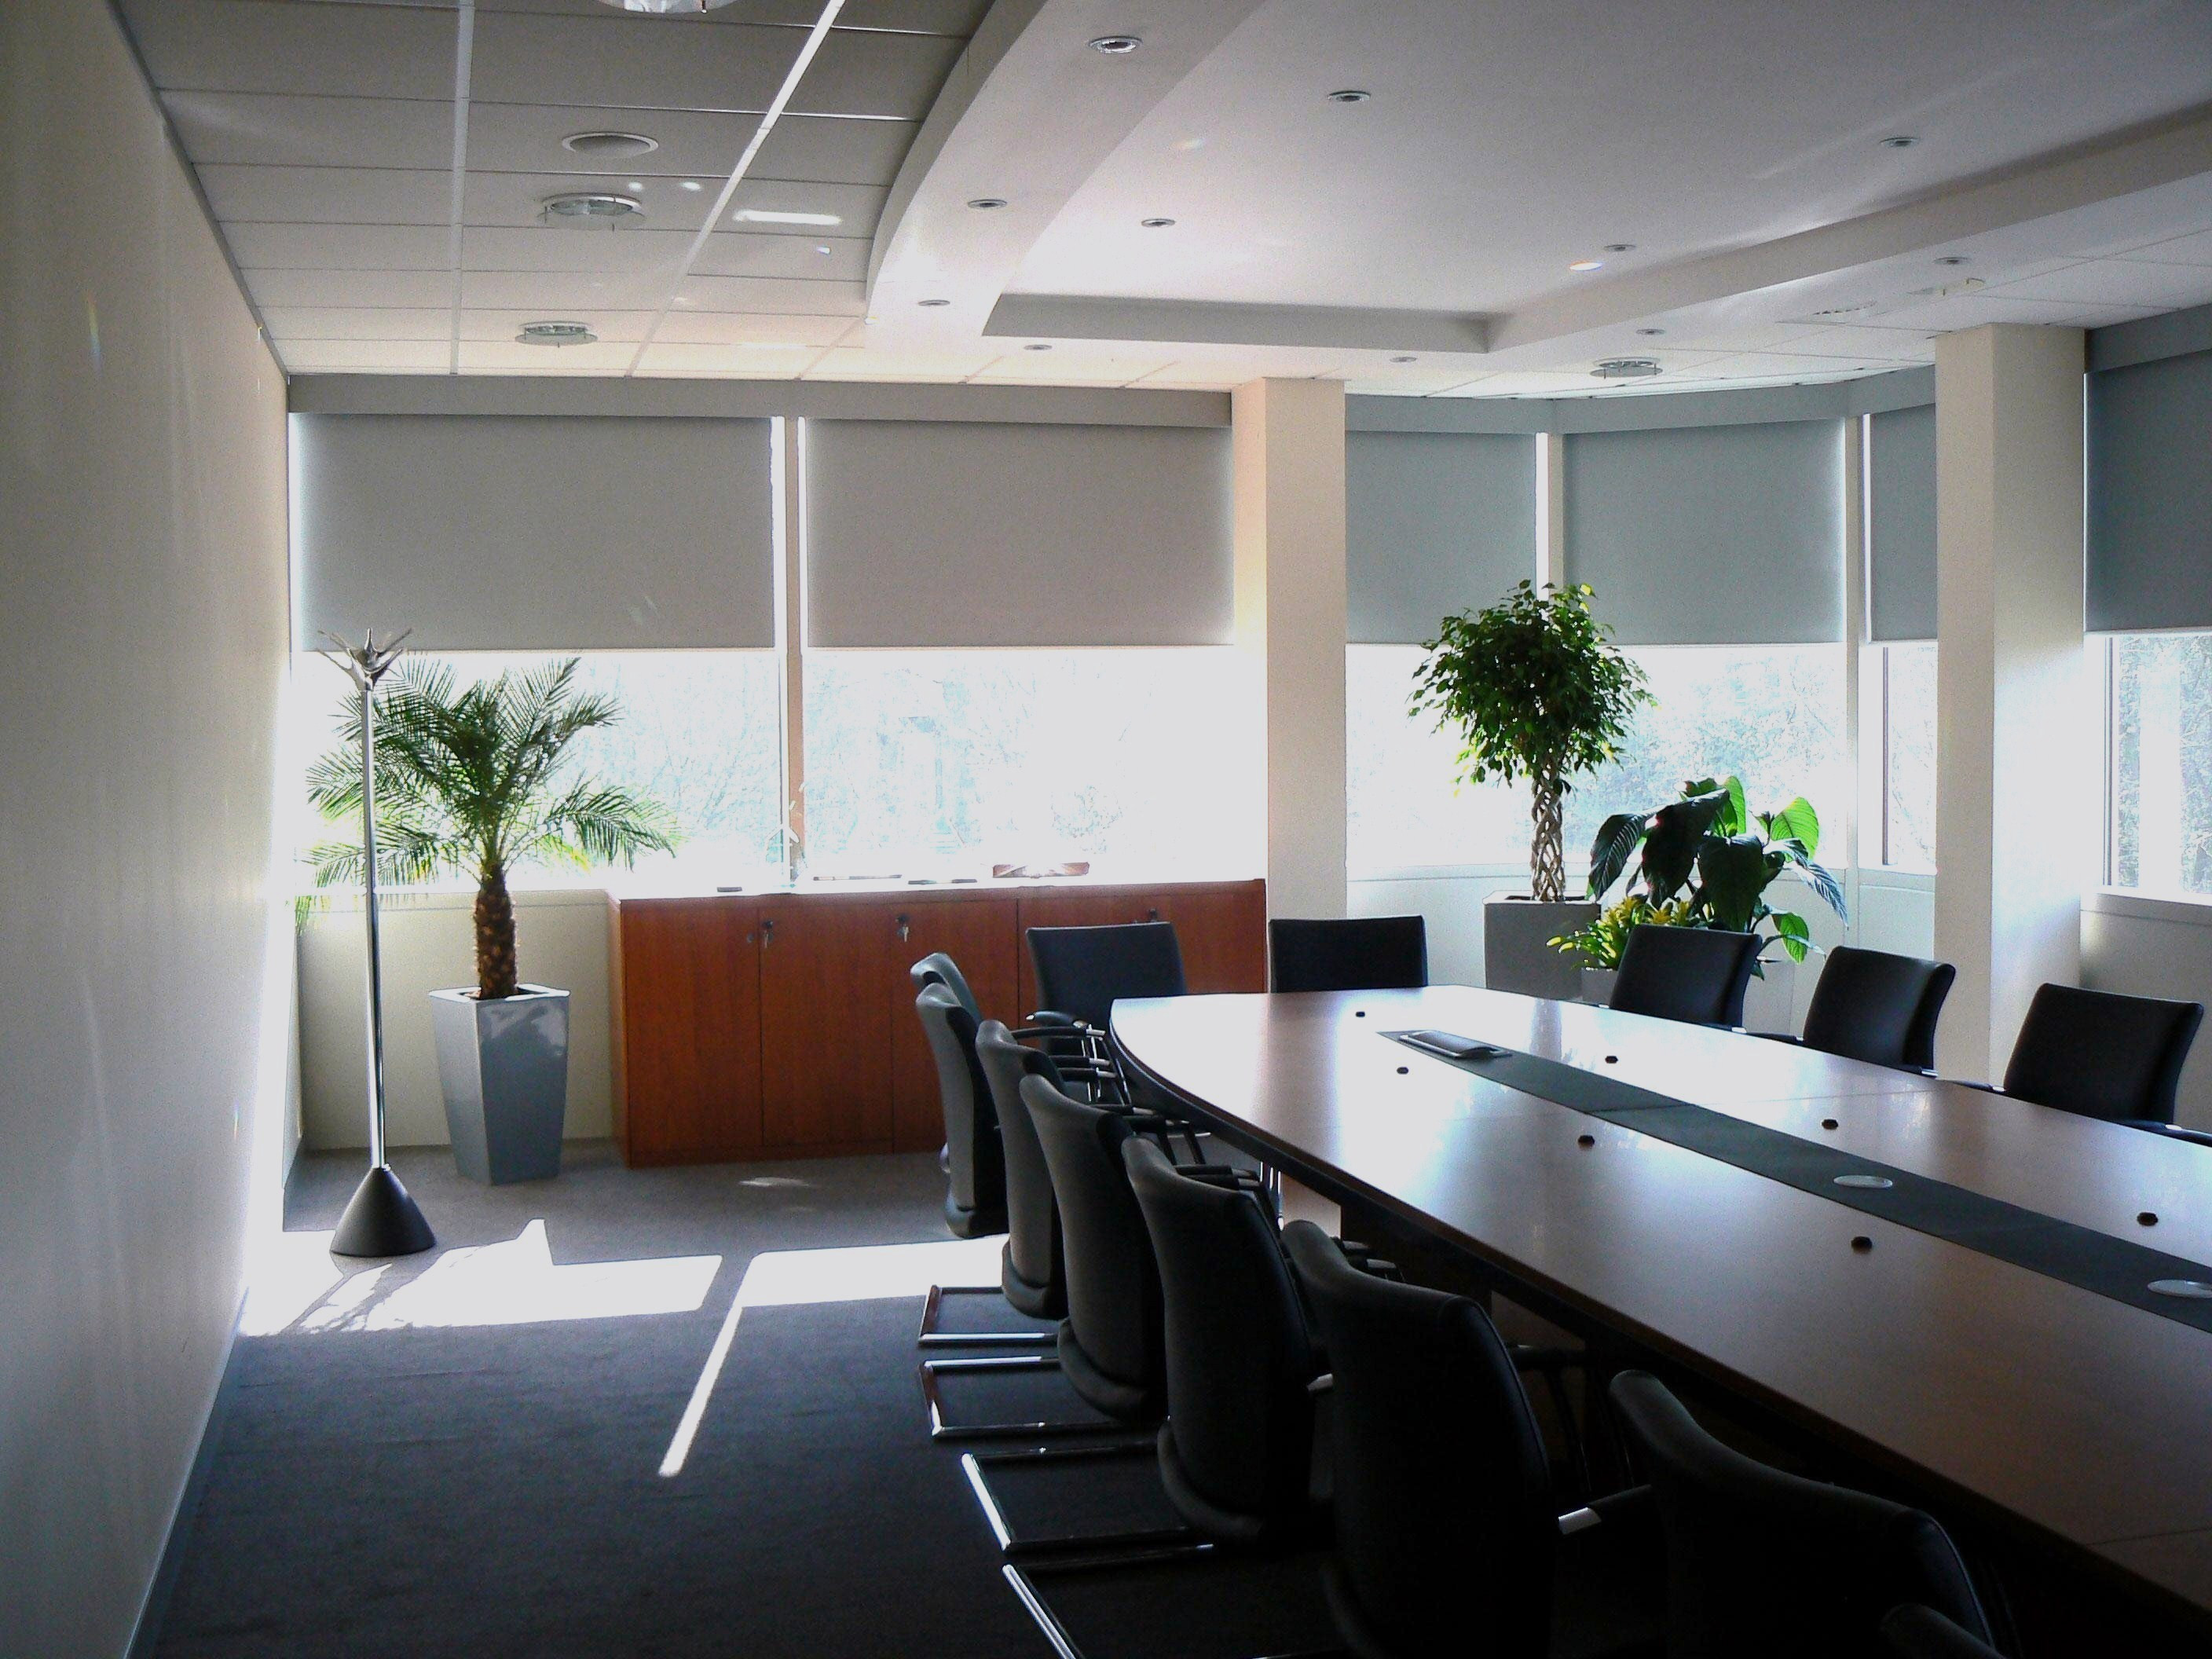 Roller Blinds to Control Solar Glare and Light Transmission